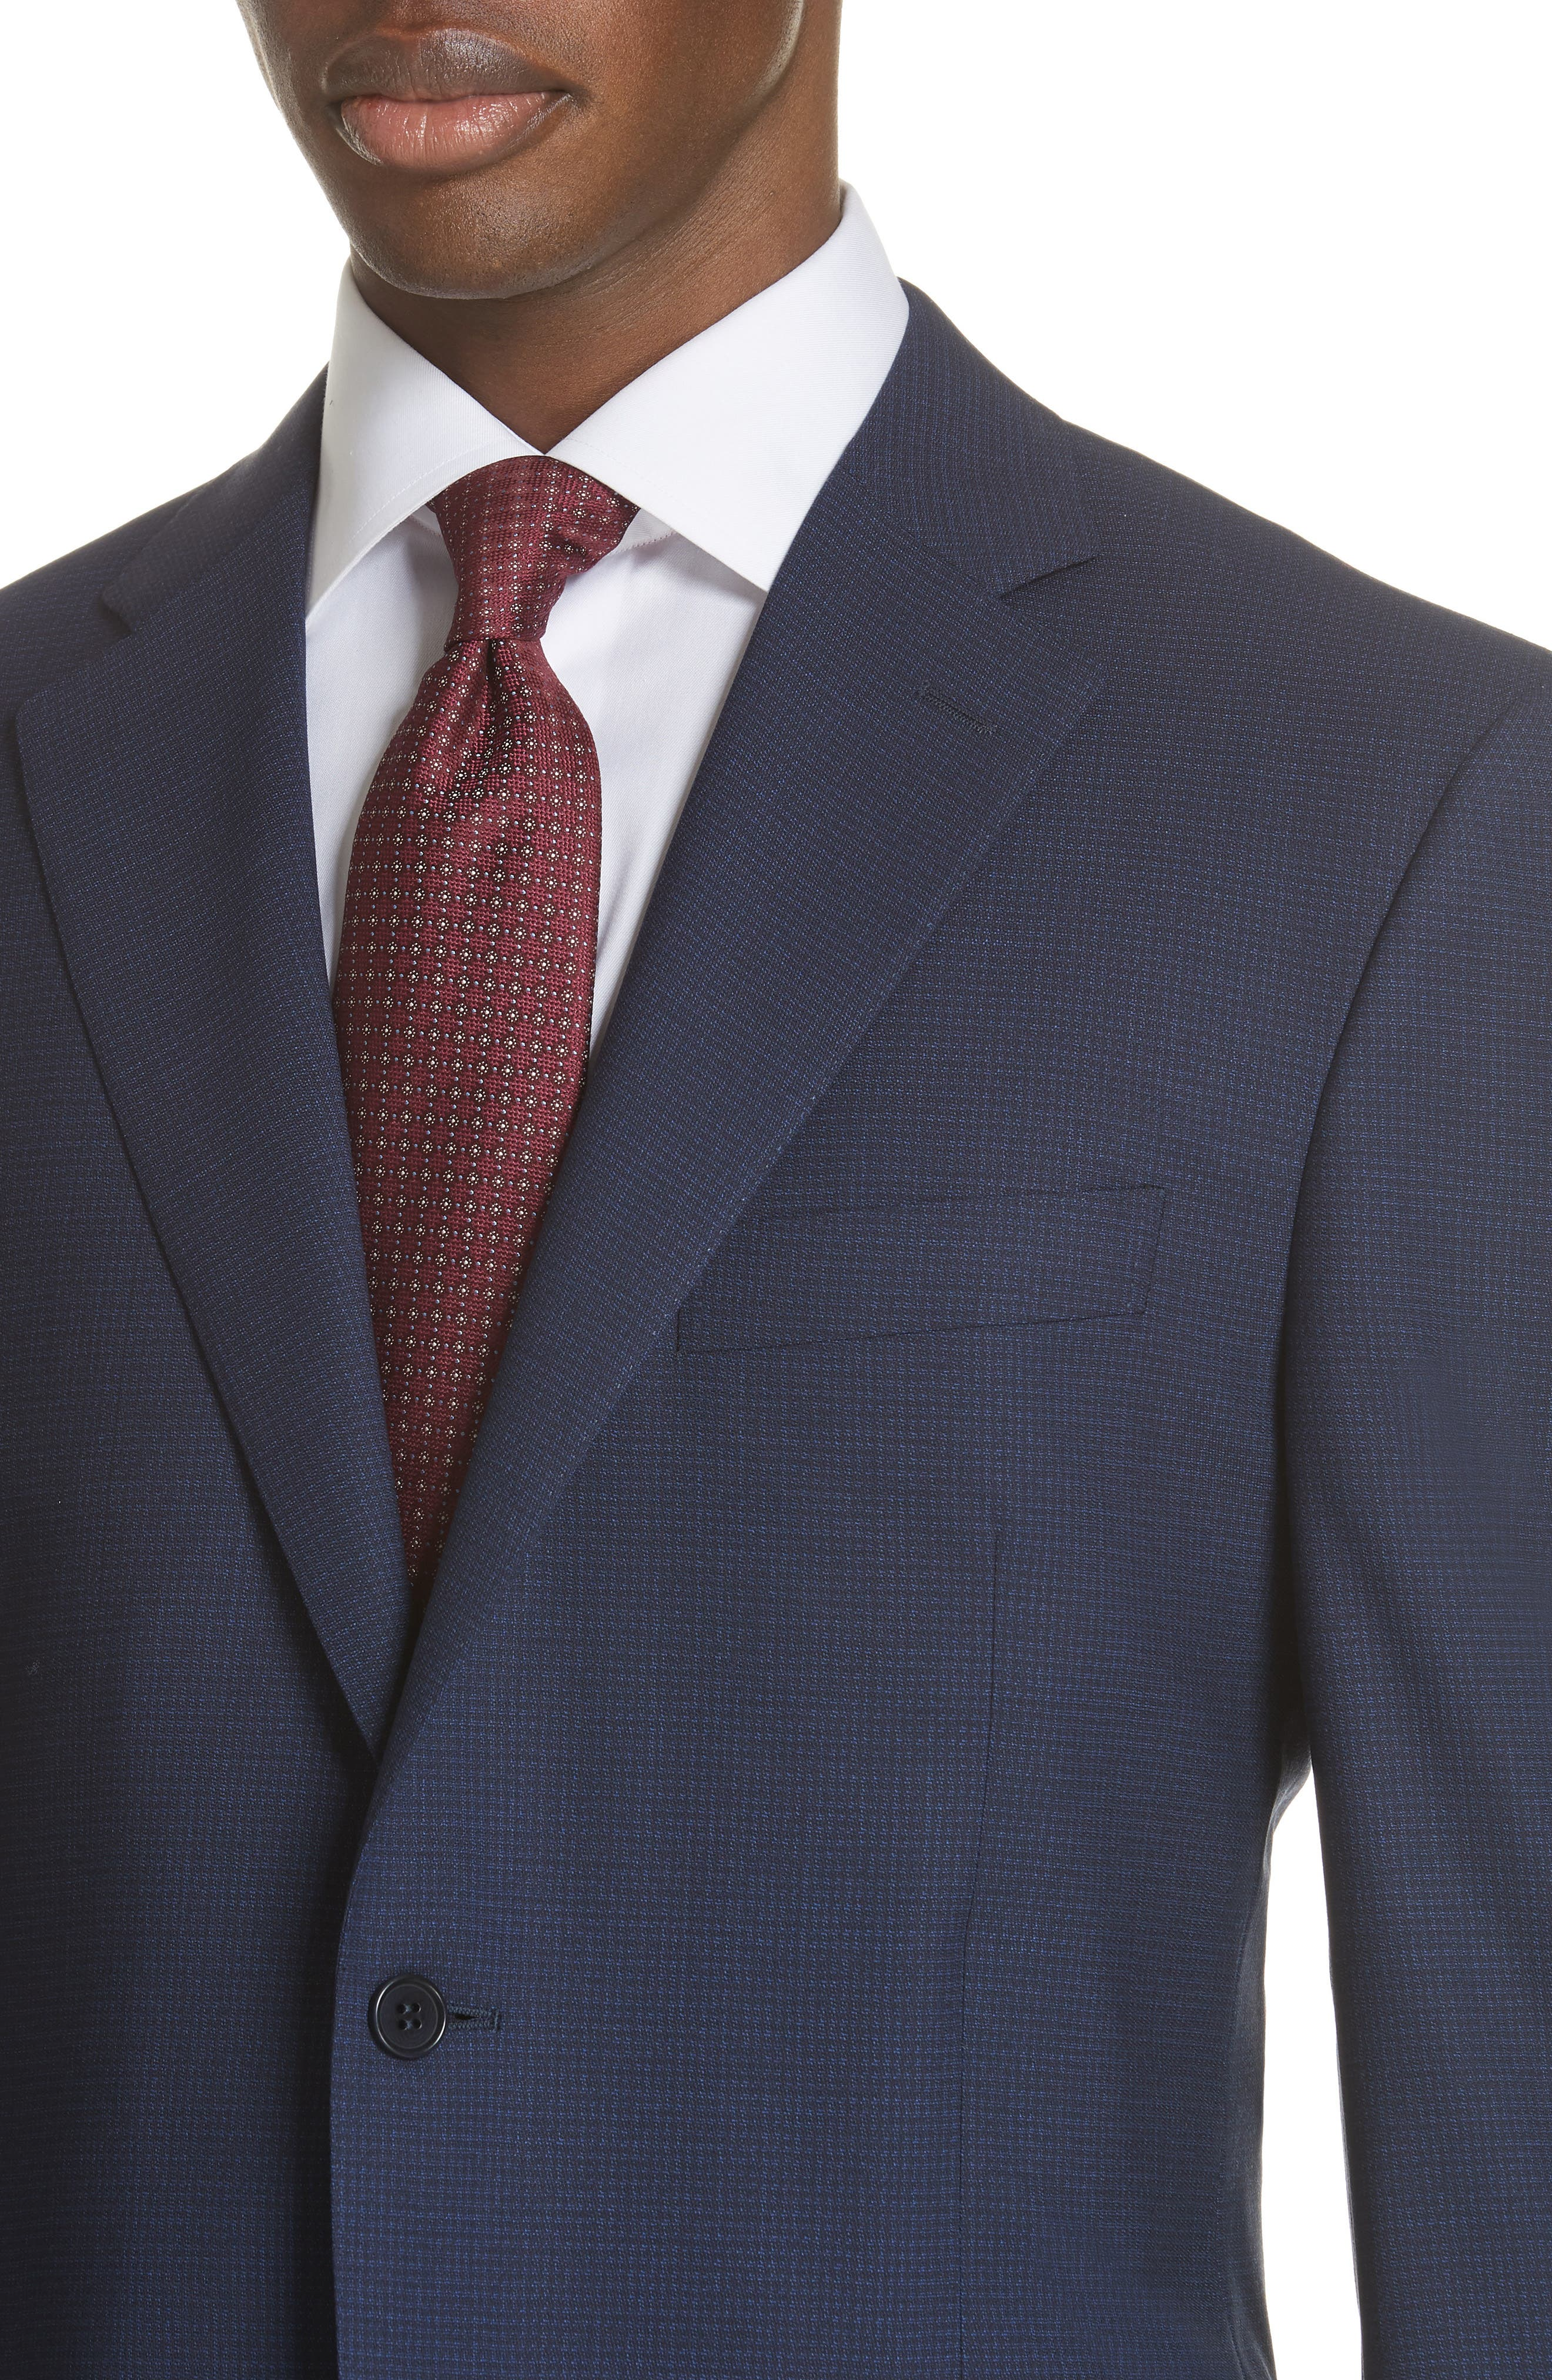 CANALI,                             Classic Fit Check Wool Suit,                             Alternate thumbnail 4, color,                             400